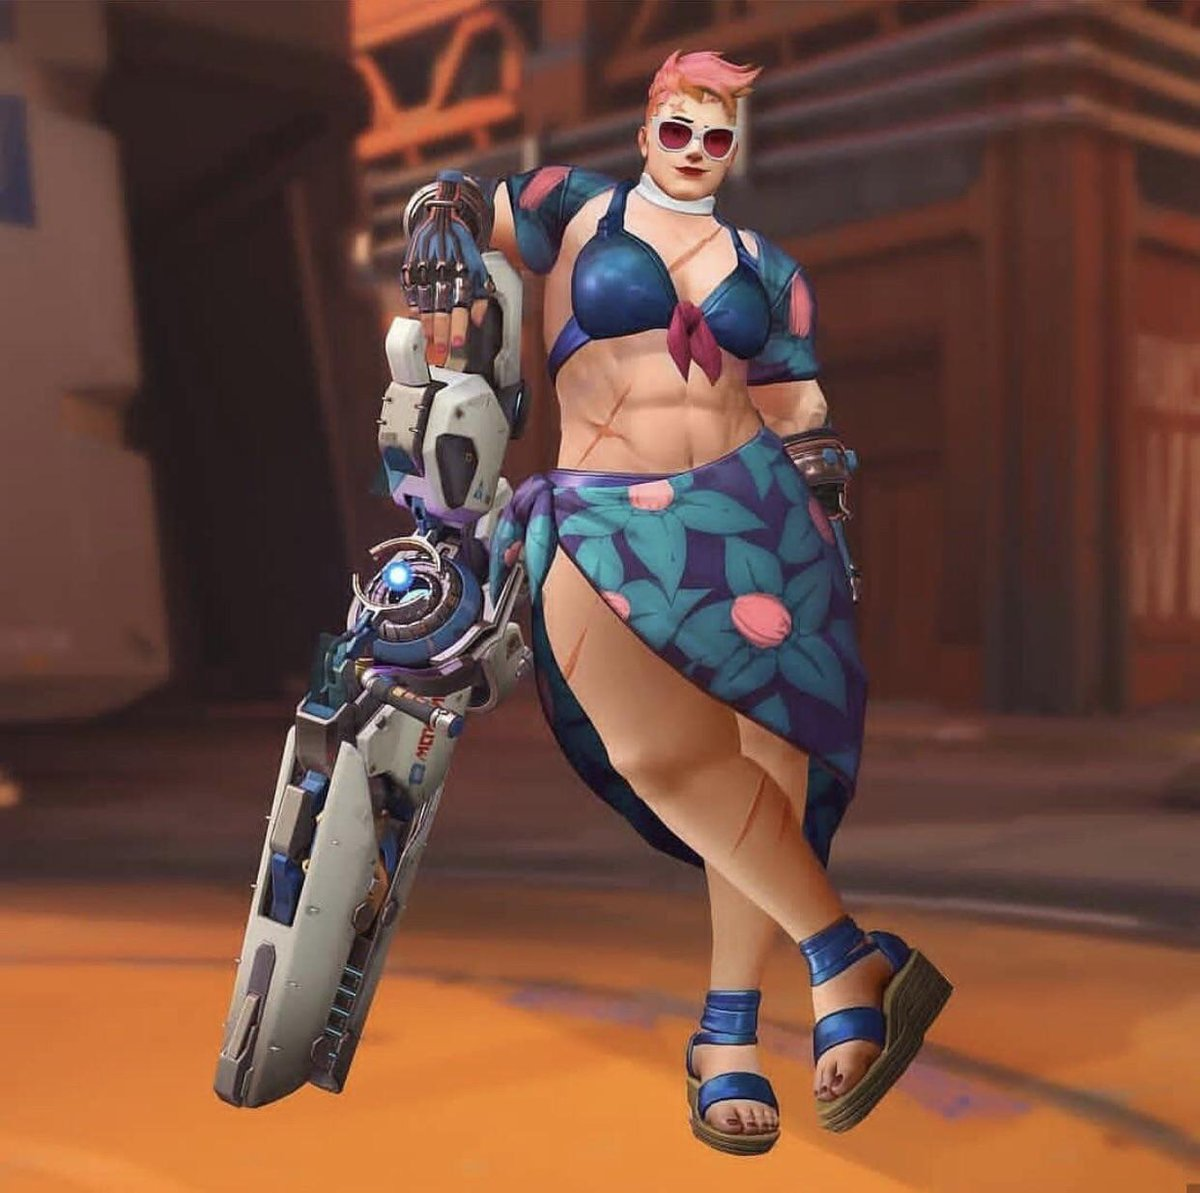 The very idea that gamers and weebs apparently hate bigger or just  muscular girls is so laughable to me considering other depictions right down to fanart <br>http://pic.twitter.com/bVlMSKFUNC